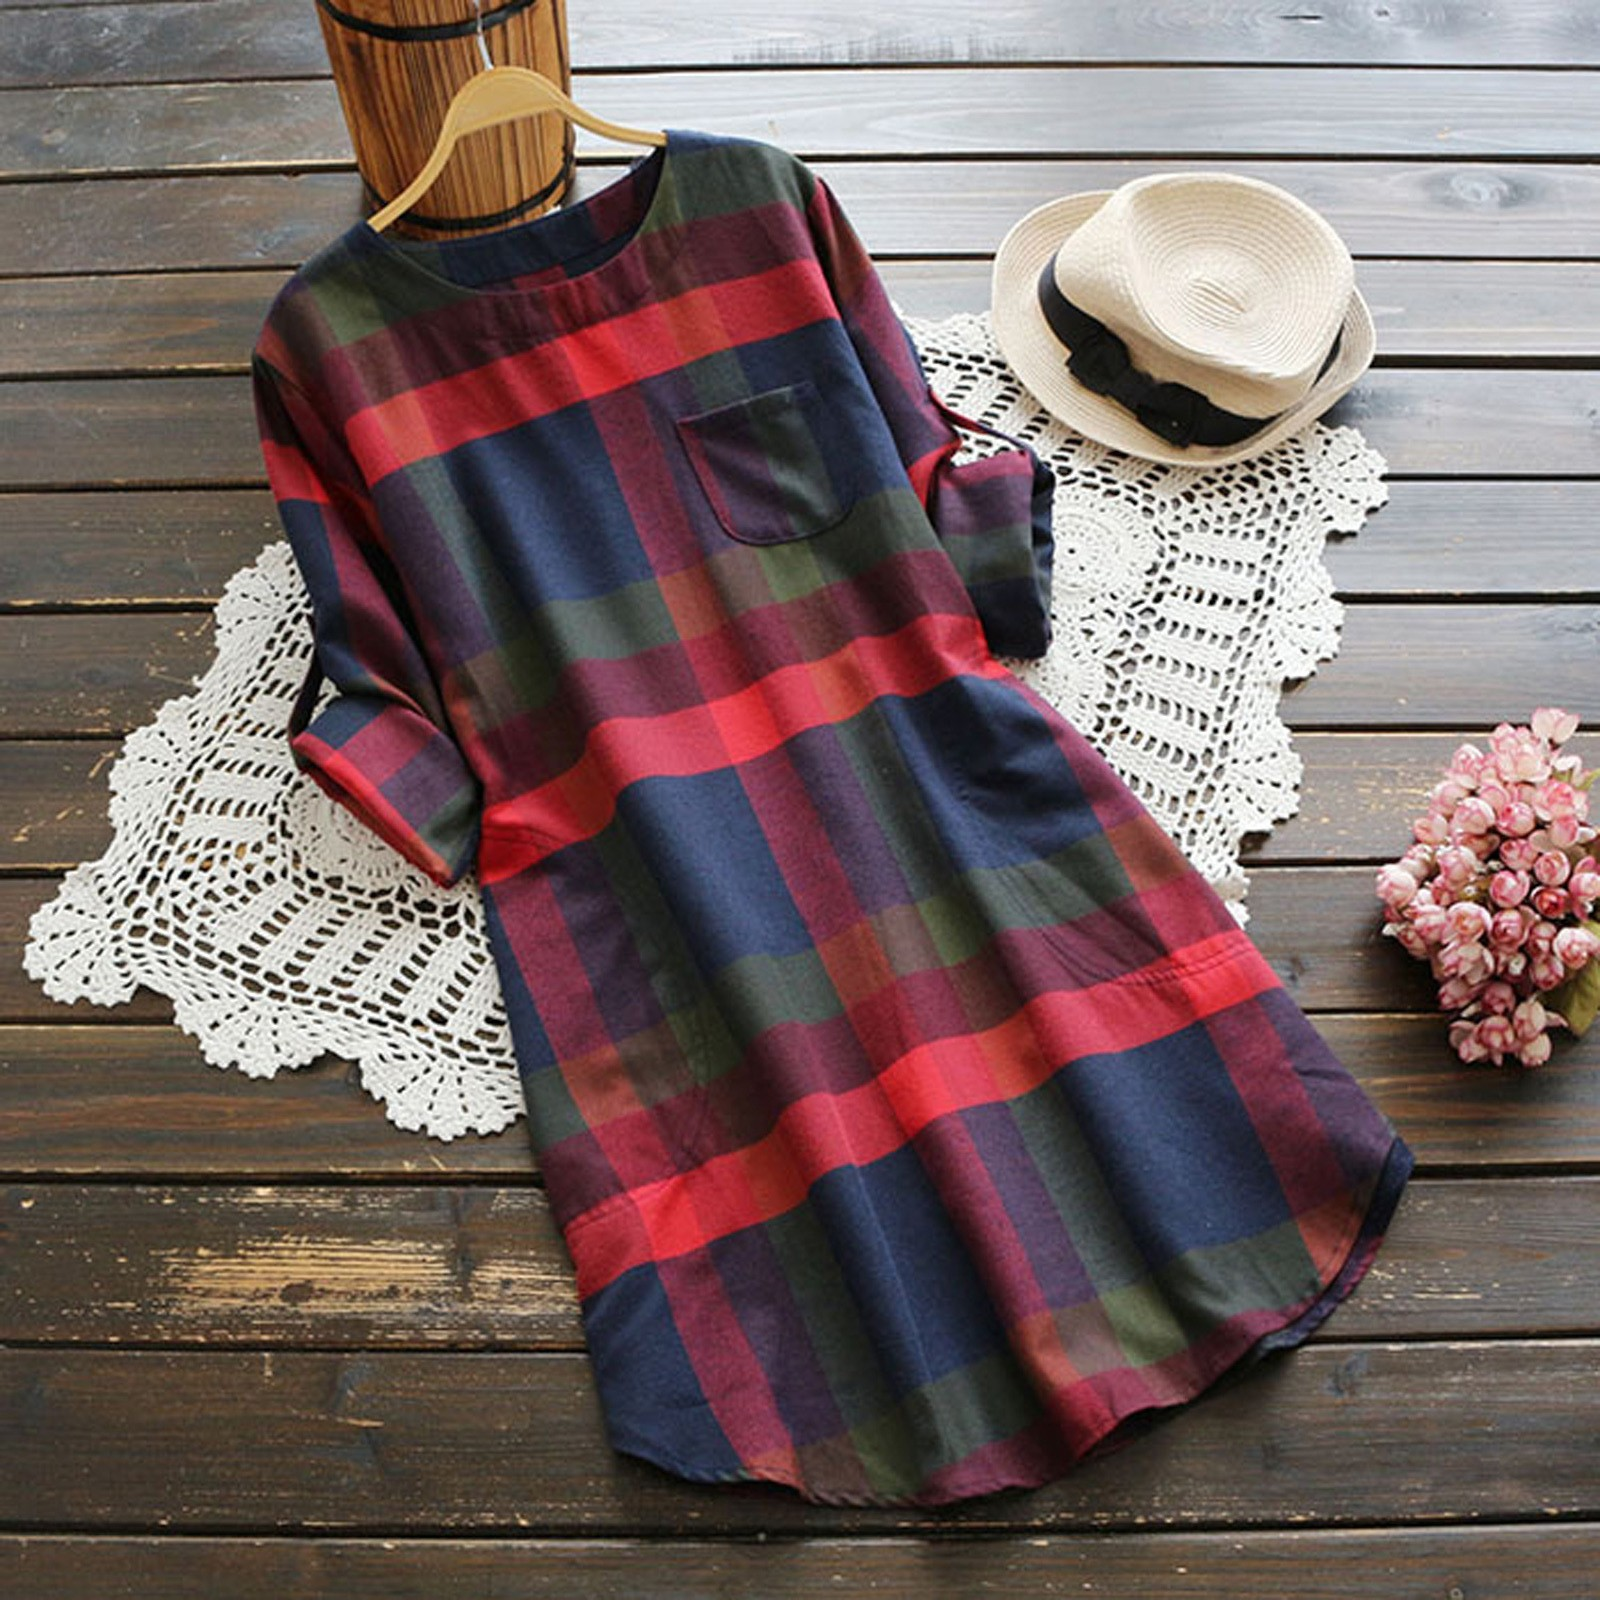 40# Fashion Women Elegant Dresses Ladies Leisure Outdoor Retro Plaid Long Sleeve Loose Pocket Swing Vintage Dress Платье Осень